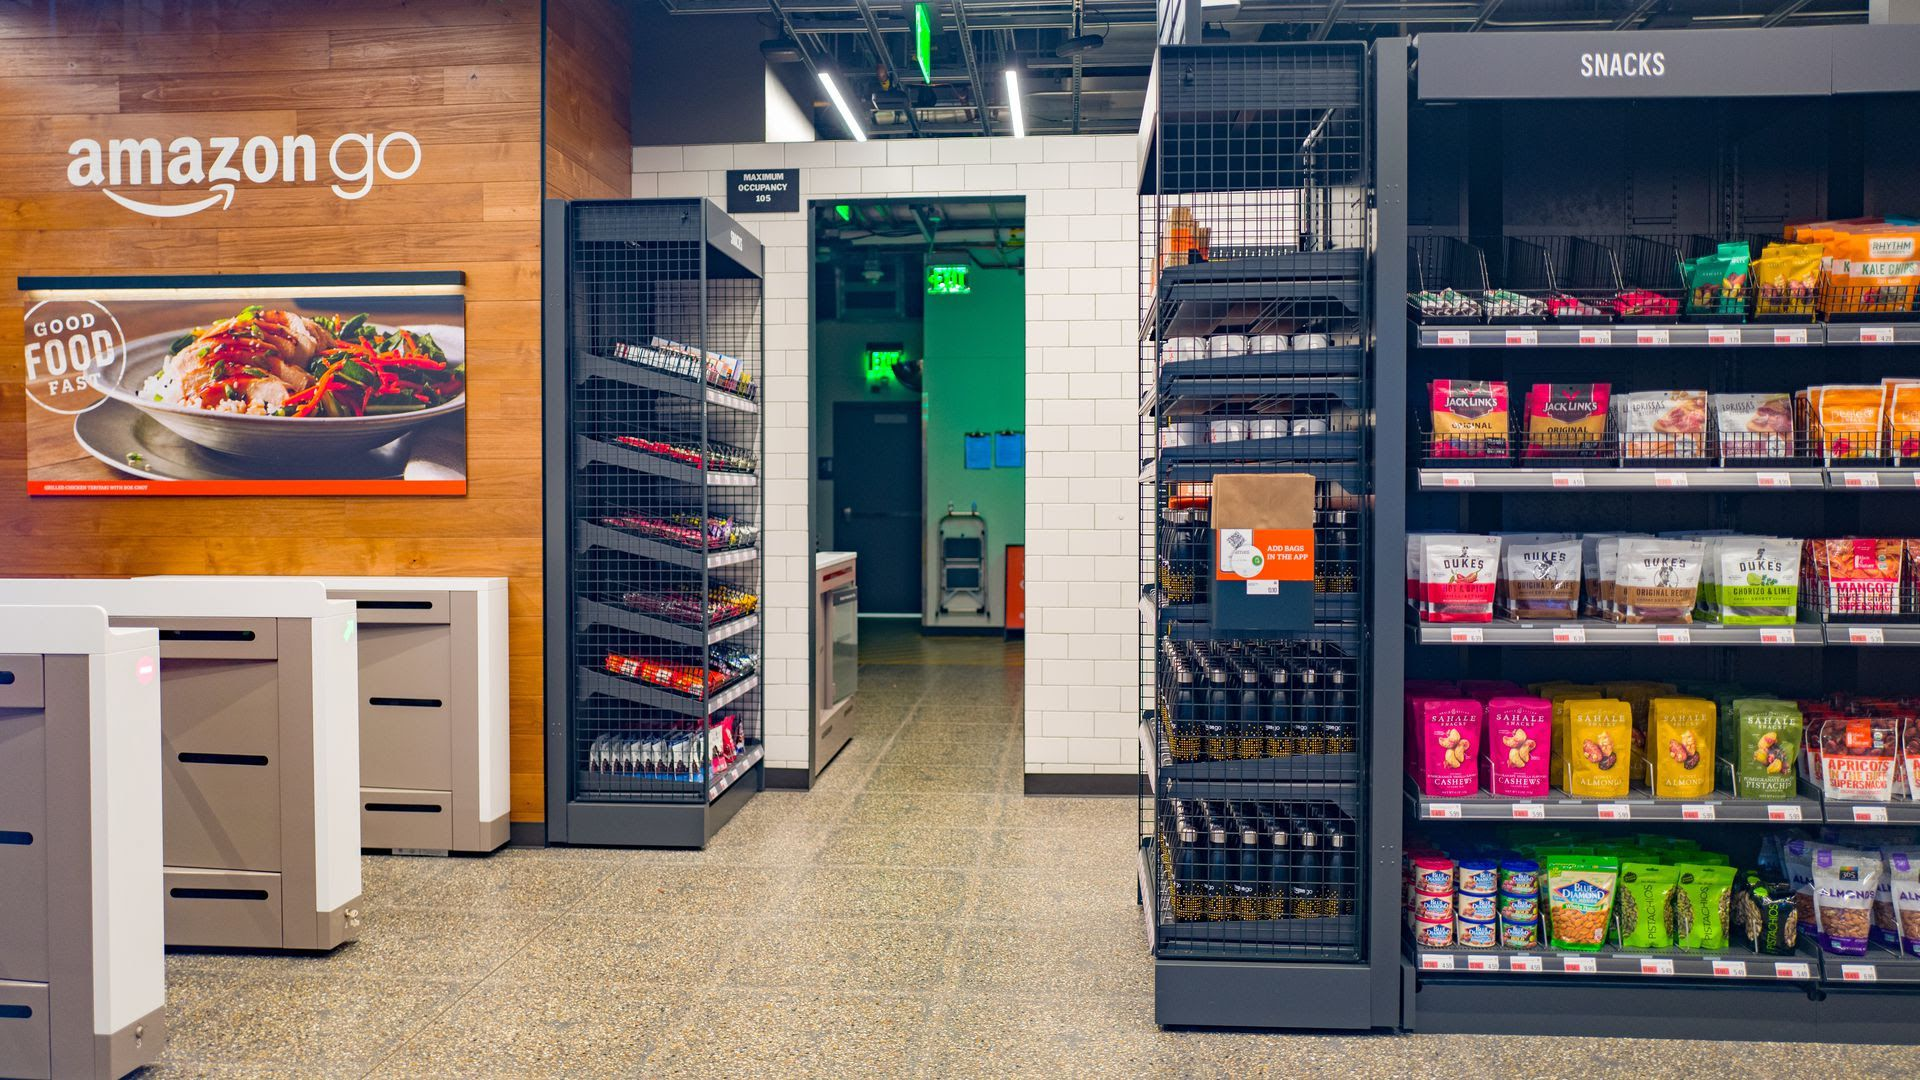 An Amazon Go store